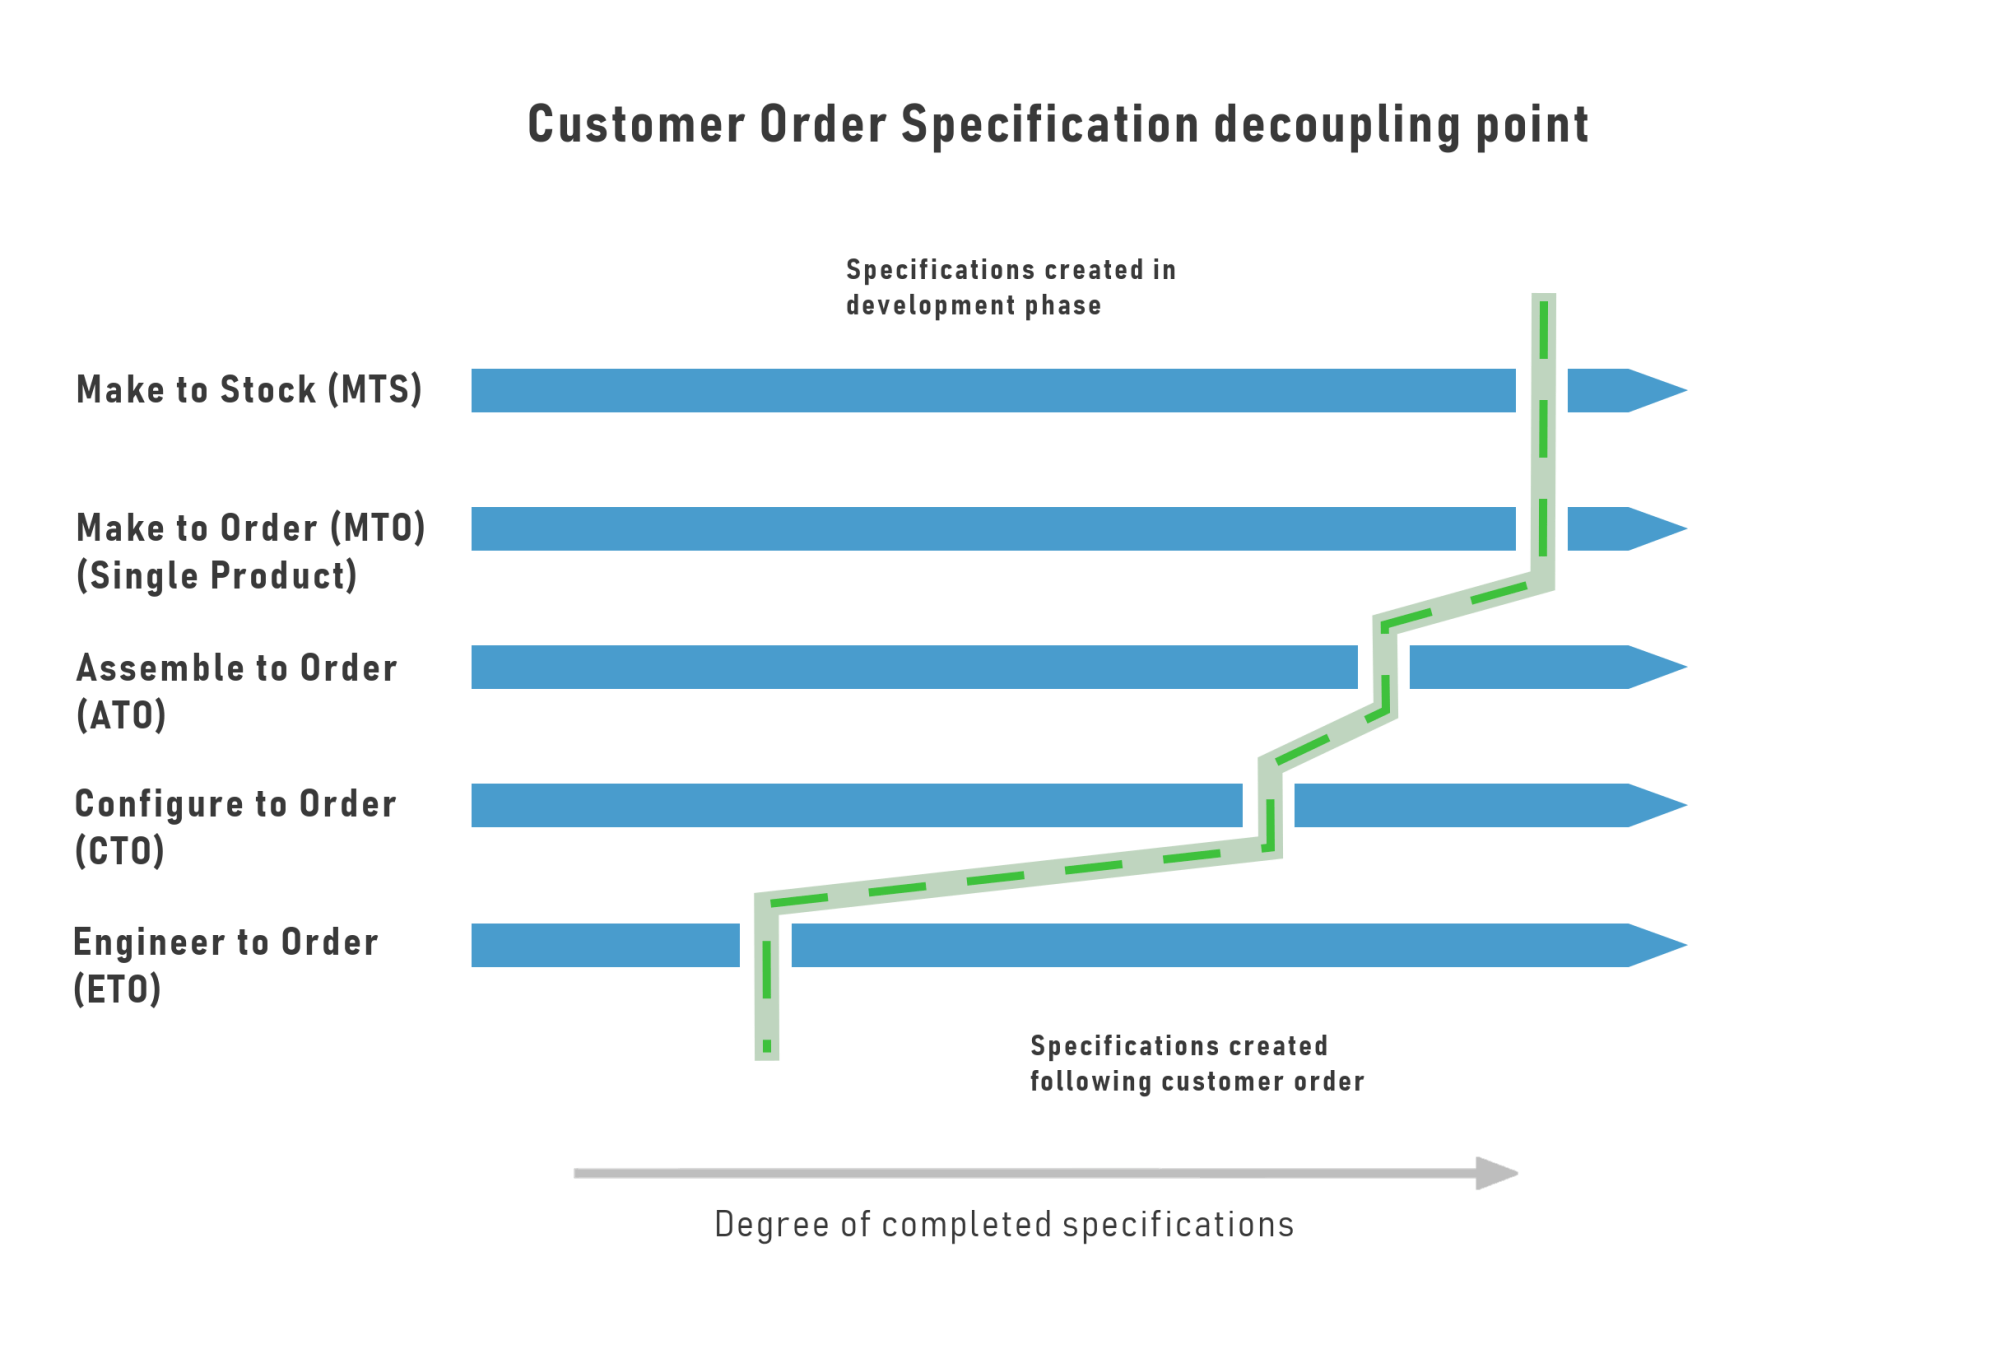 hight resolution of customer order specification decoupling chart